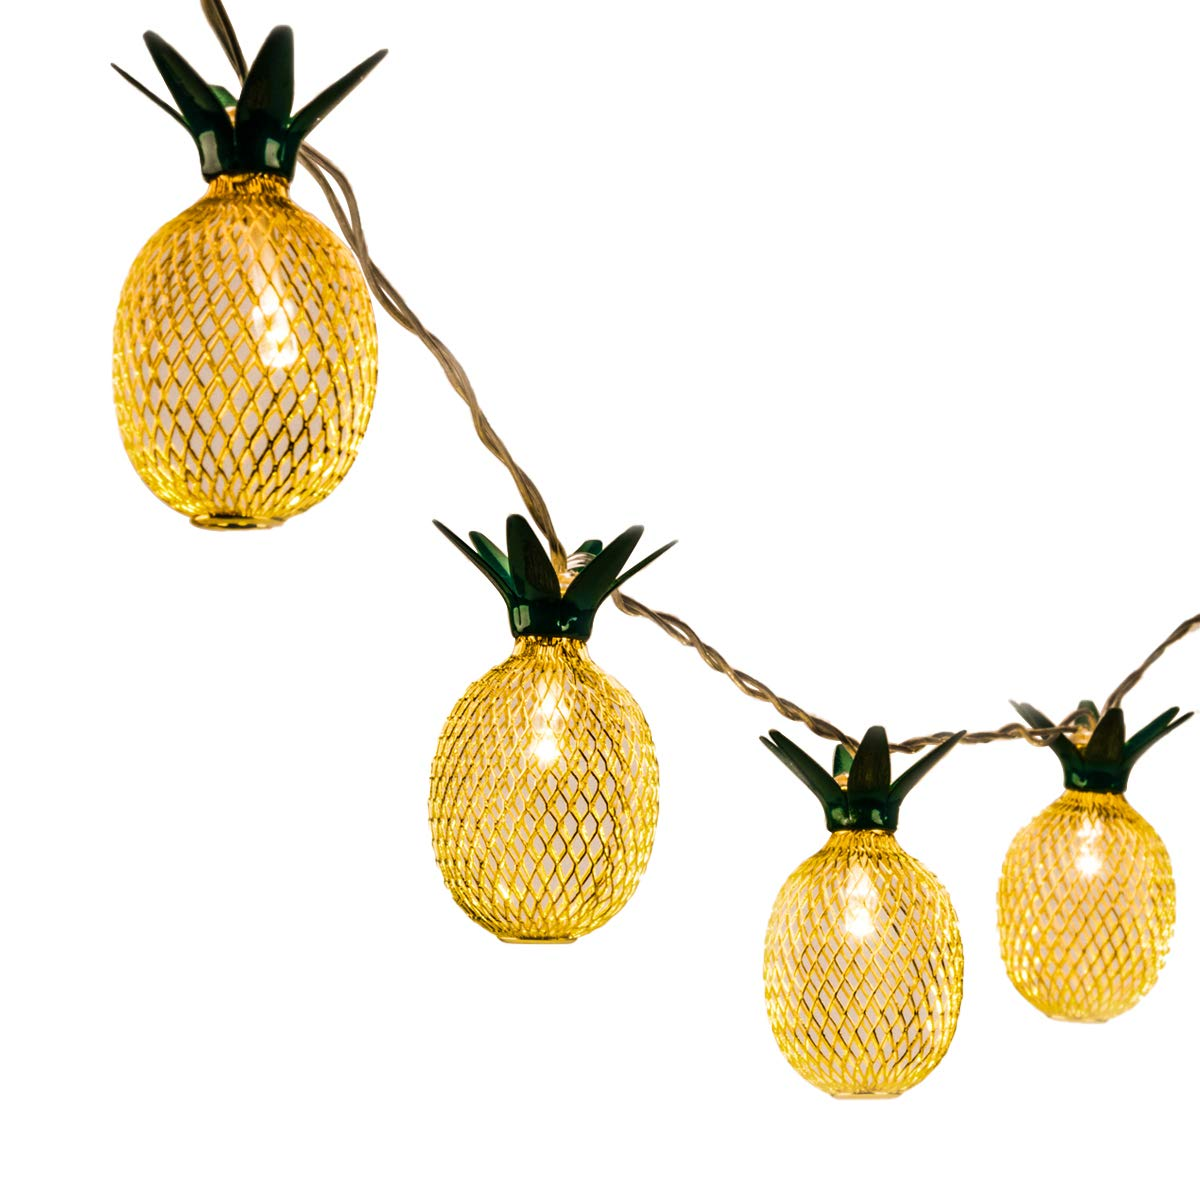 GIGALUMI Pineapple String Lights, 15ft 20 LED Fairy String Lights Battery Operated for Patio Home Wedding Party Bedroom Birthday Decoration (Warm White) by GIGALUMI (Image #1)